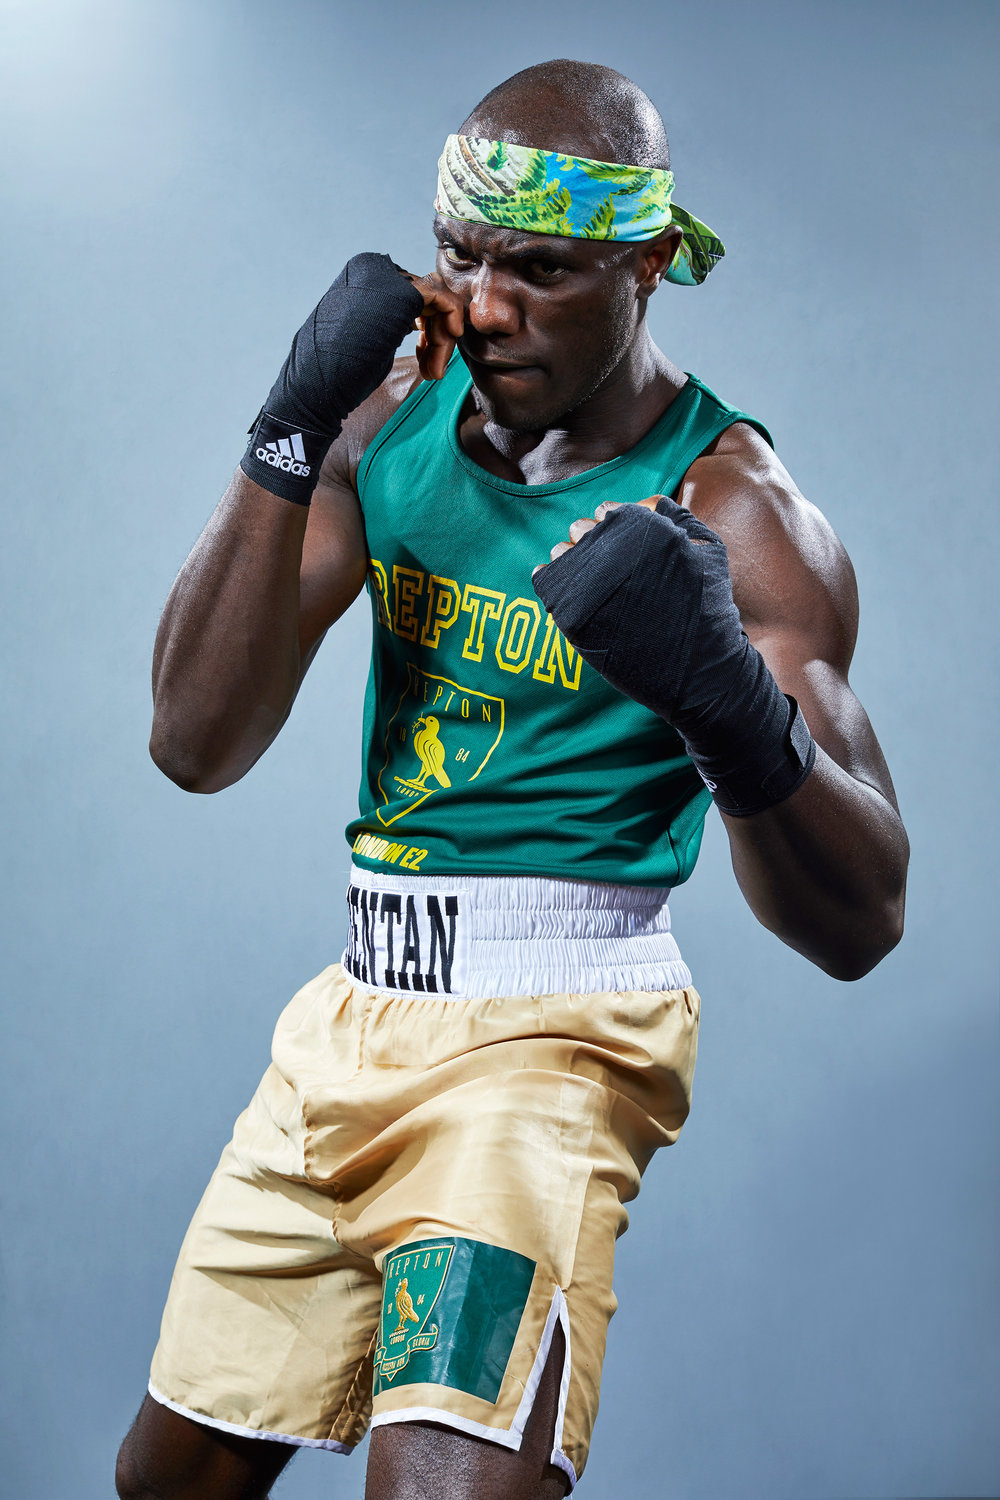 Sports & Fitness Photographer Stefano Boxing Mad